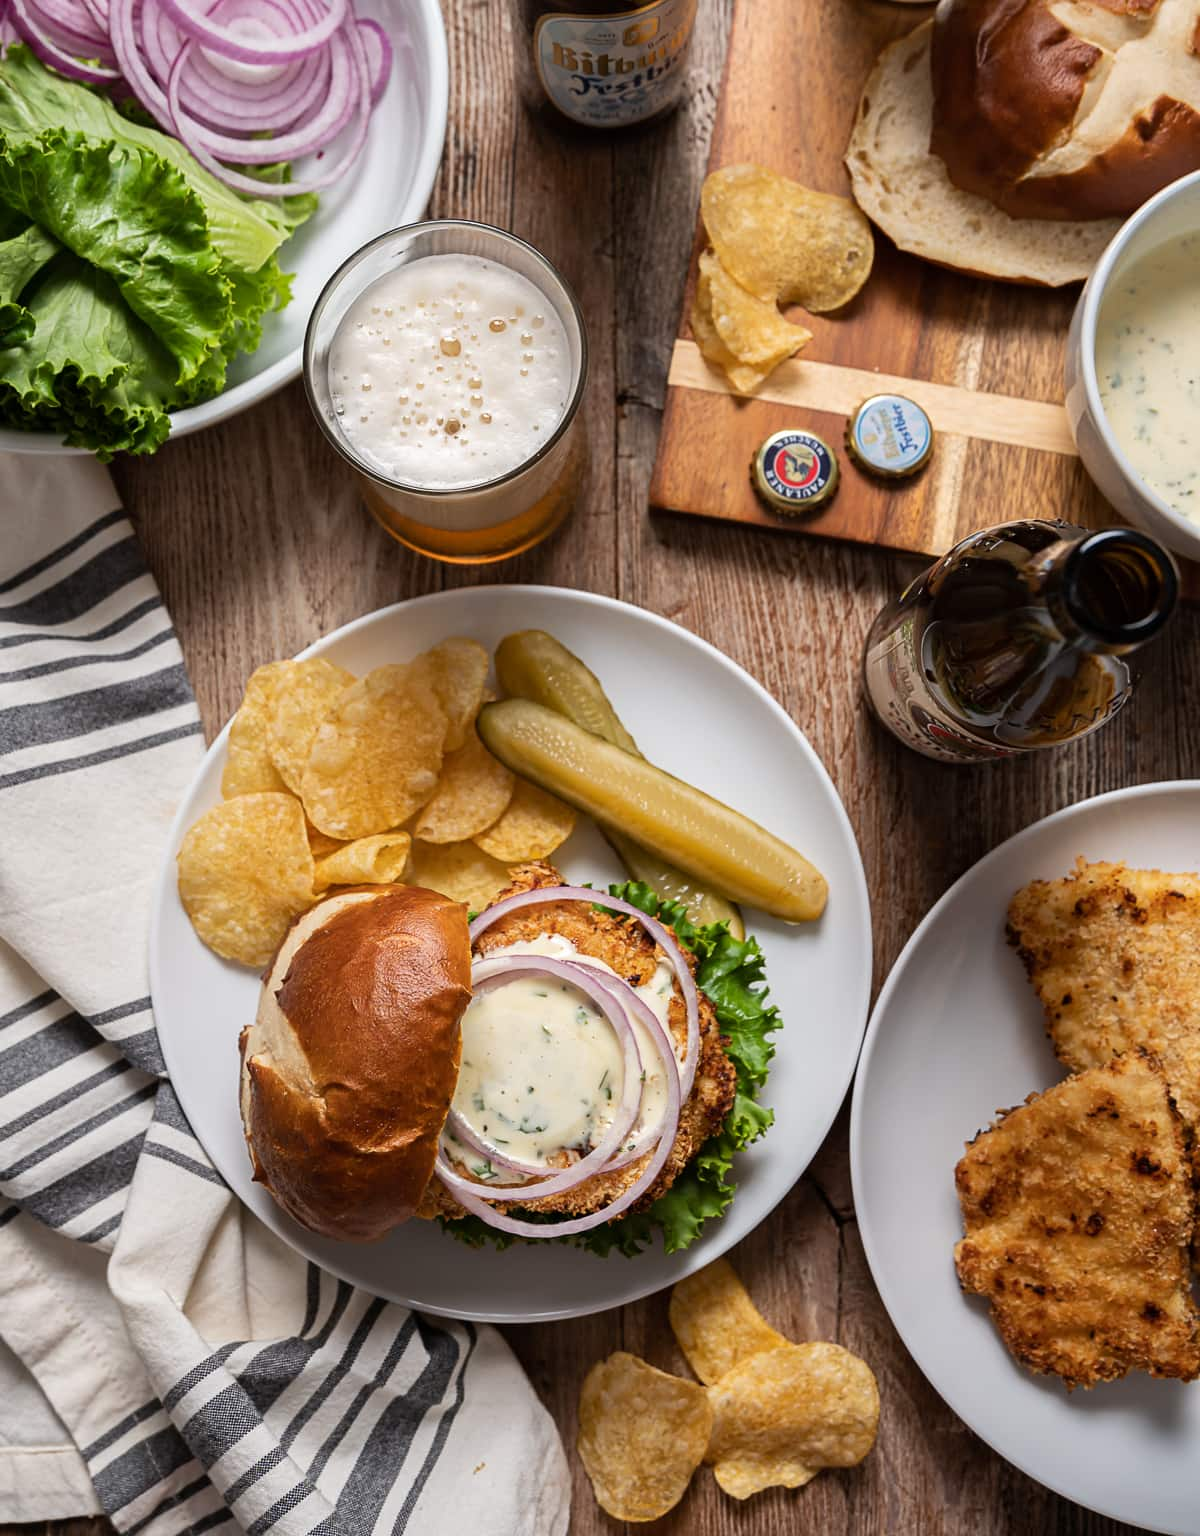 chicken schnitzel sandwich with mayonnaise sauce, red onion rings, plate with thin fried chicken, bottle and glass of beer, bowl with lettuce and onions, cutting board with pretzel buns and bowl of mayonnaise sauce.